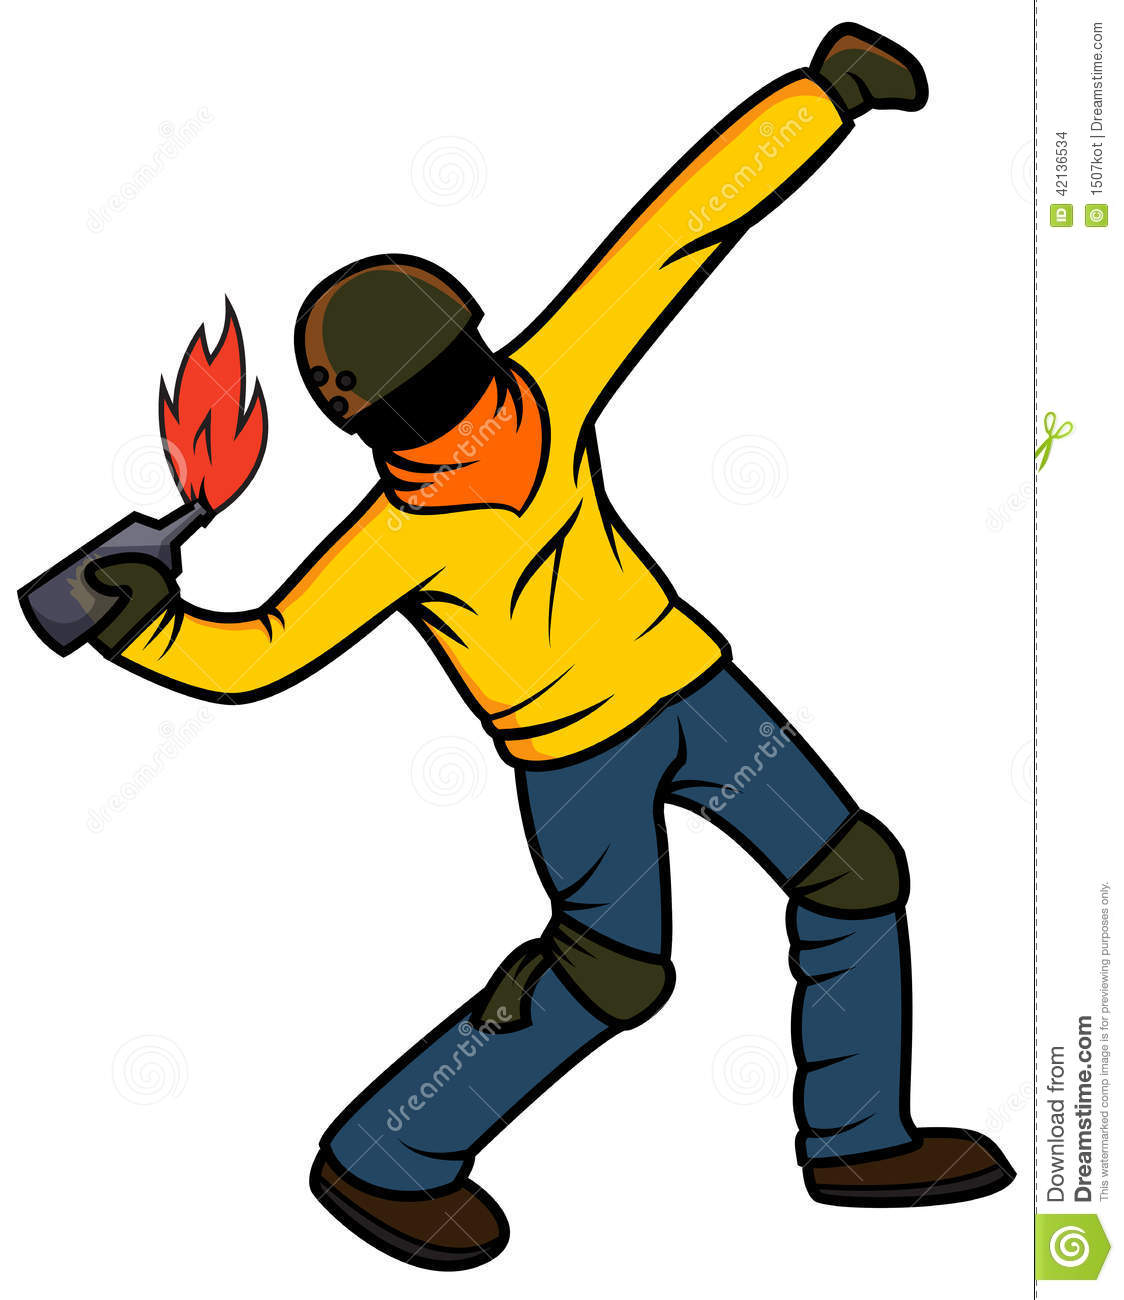 Rebel Throwing Molotov Cocktail Stock Vector Image 42136534